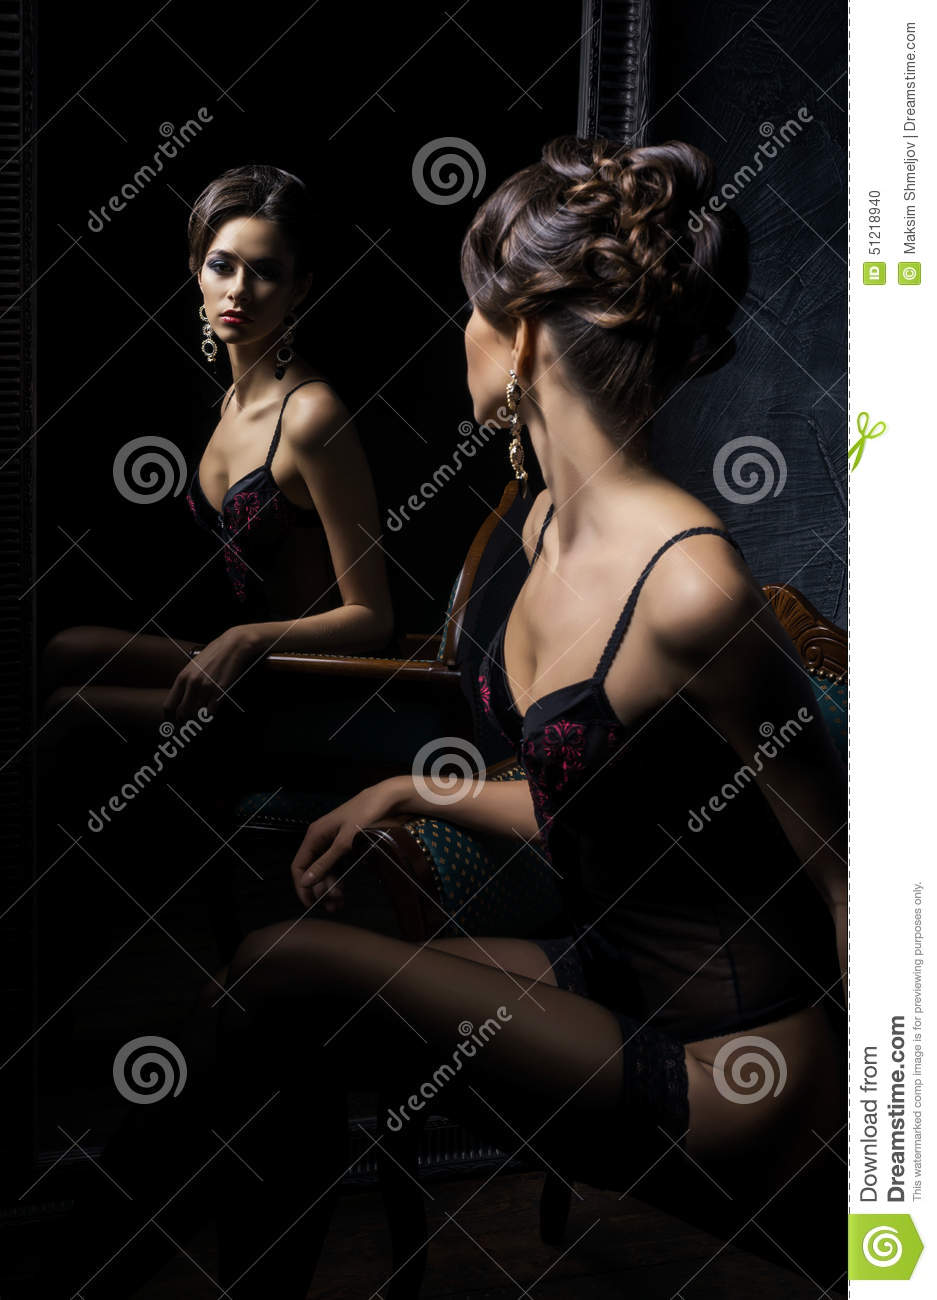 Erotic pictures of women looking in mirrors Certainly. join